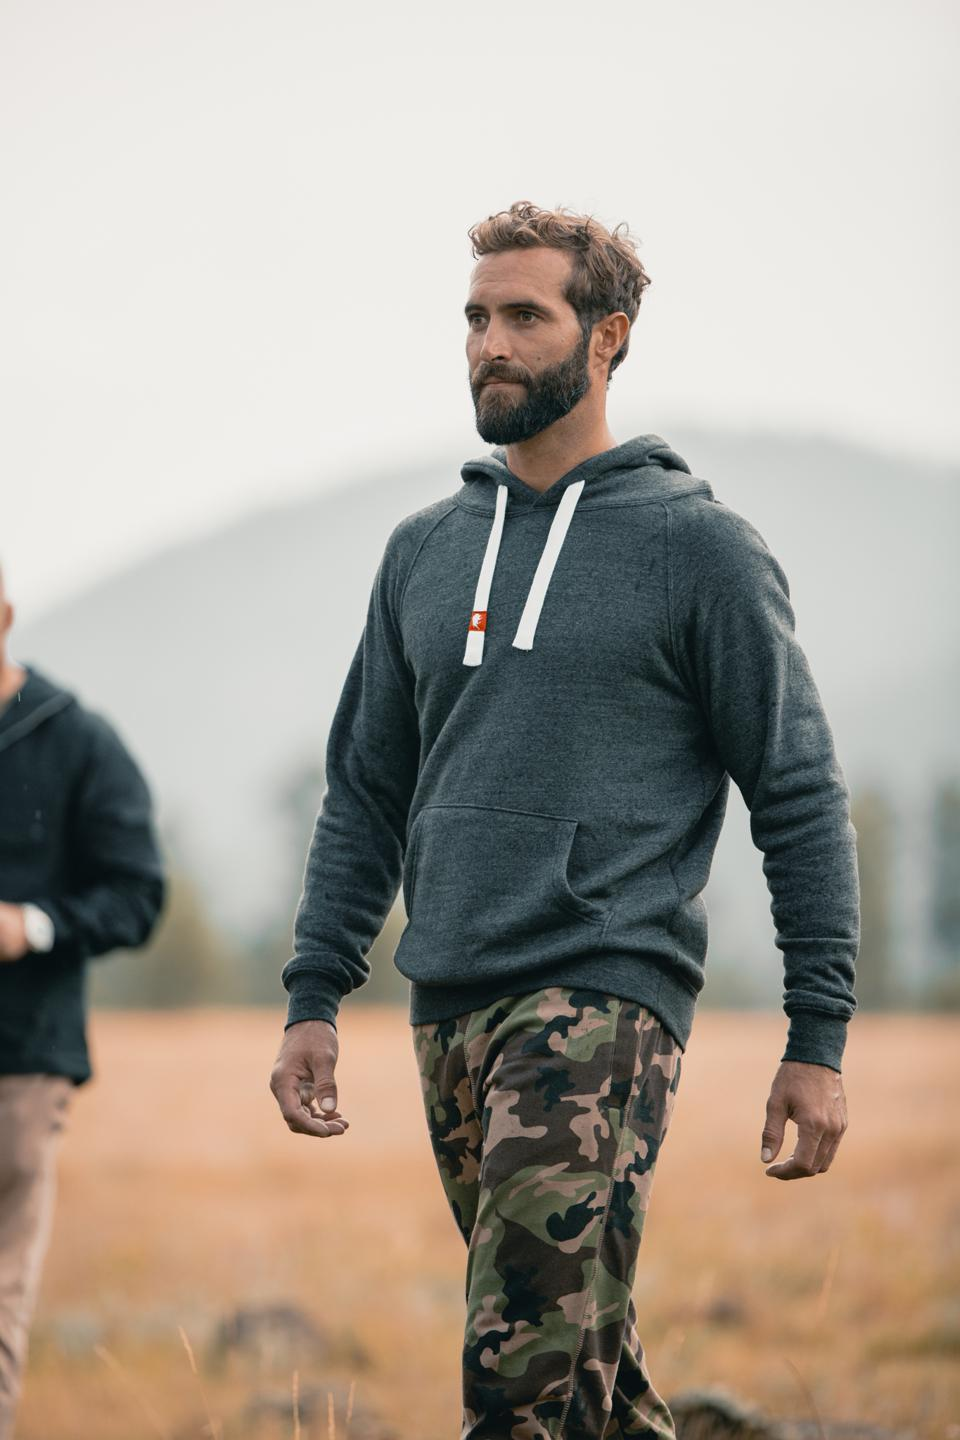 What sets Olsen's style apart from any other hoodie is its discerning thick, white and athletic drawstring and now, the latest styles are decorated with Sportiqe's classic red buffalo tab. Designed with a unisex slim fit, the Olsen is the perfect style for him or her.